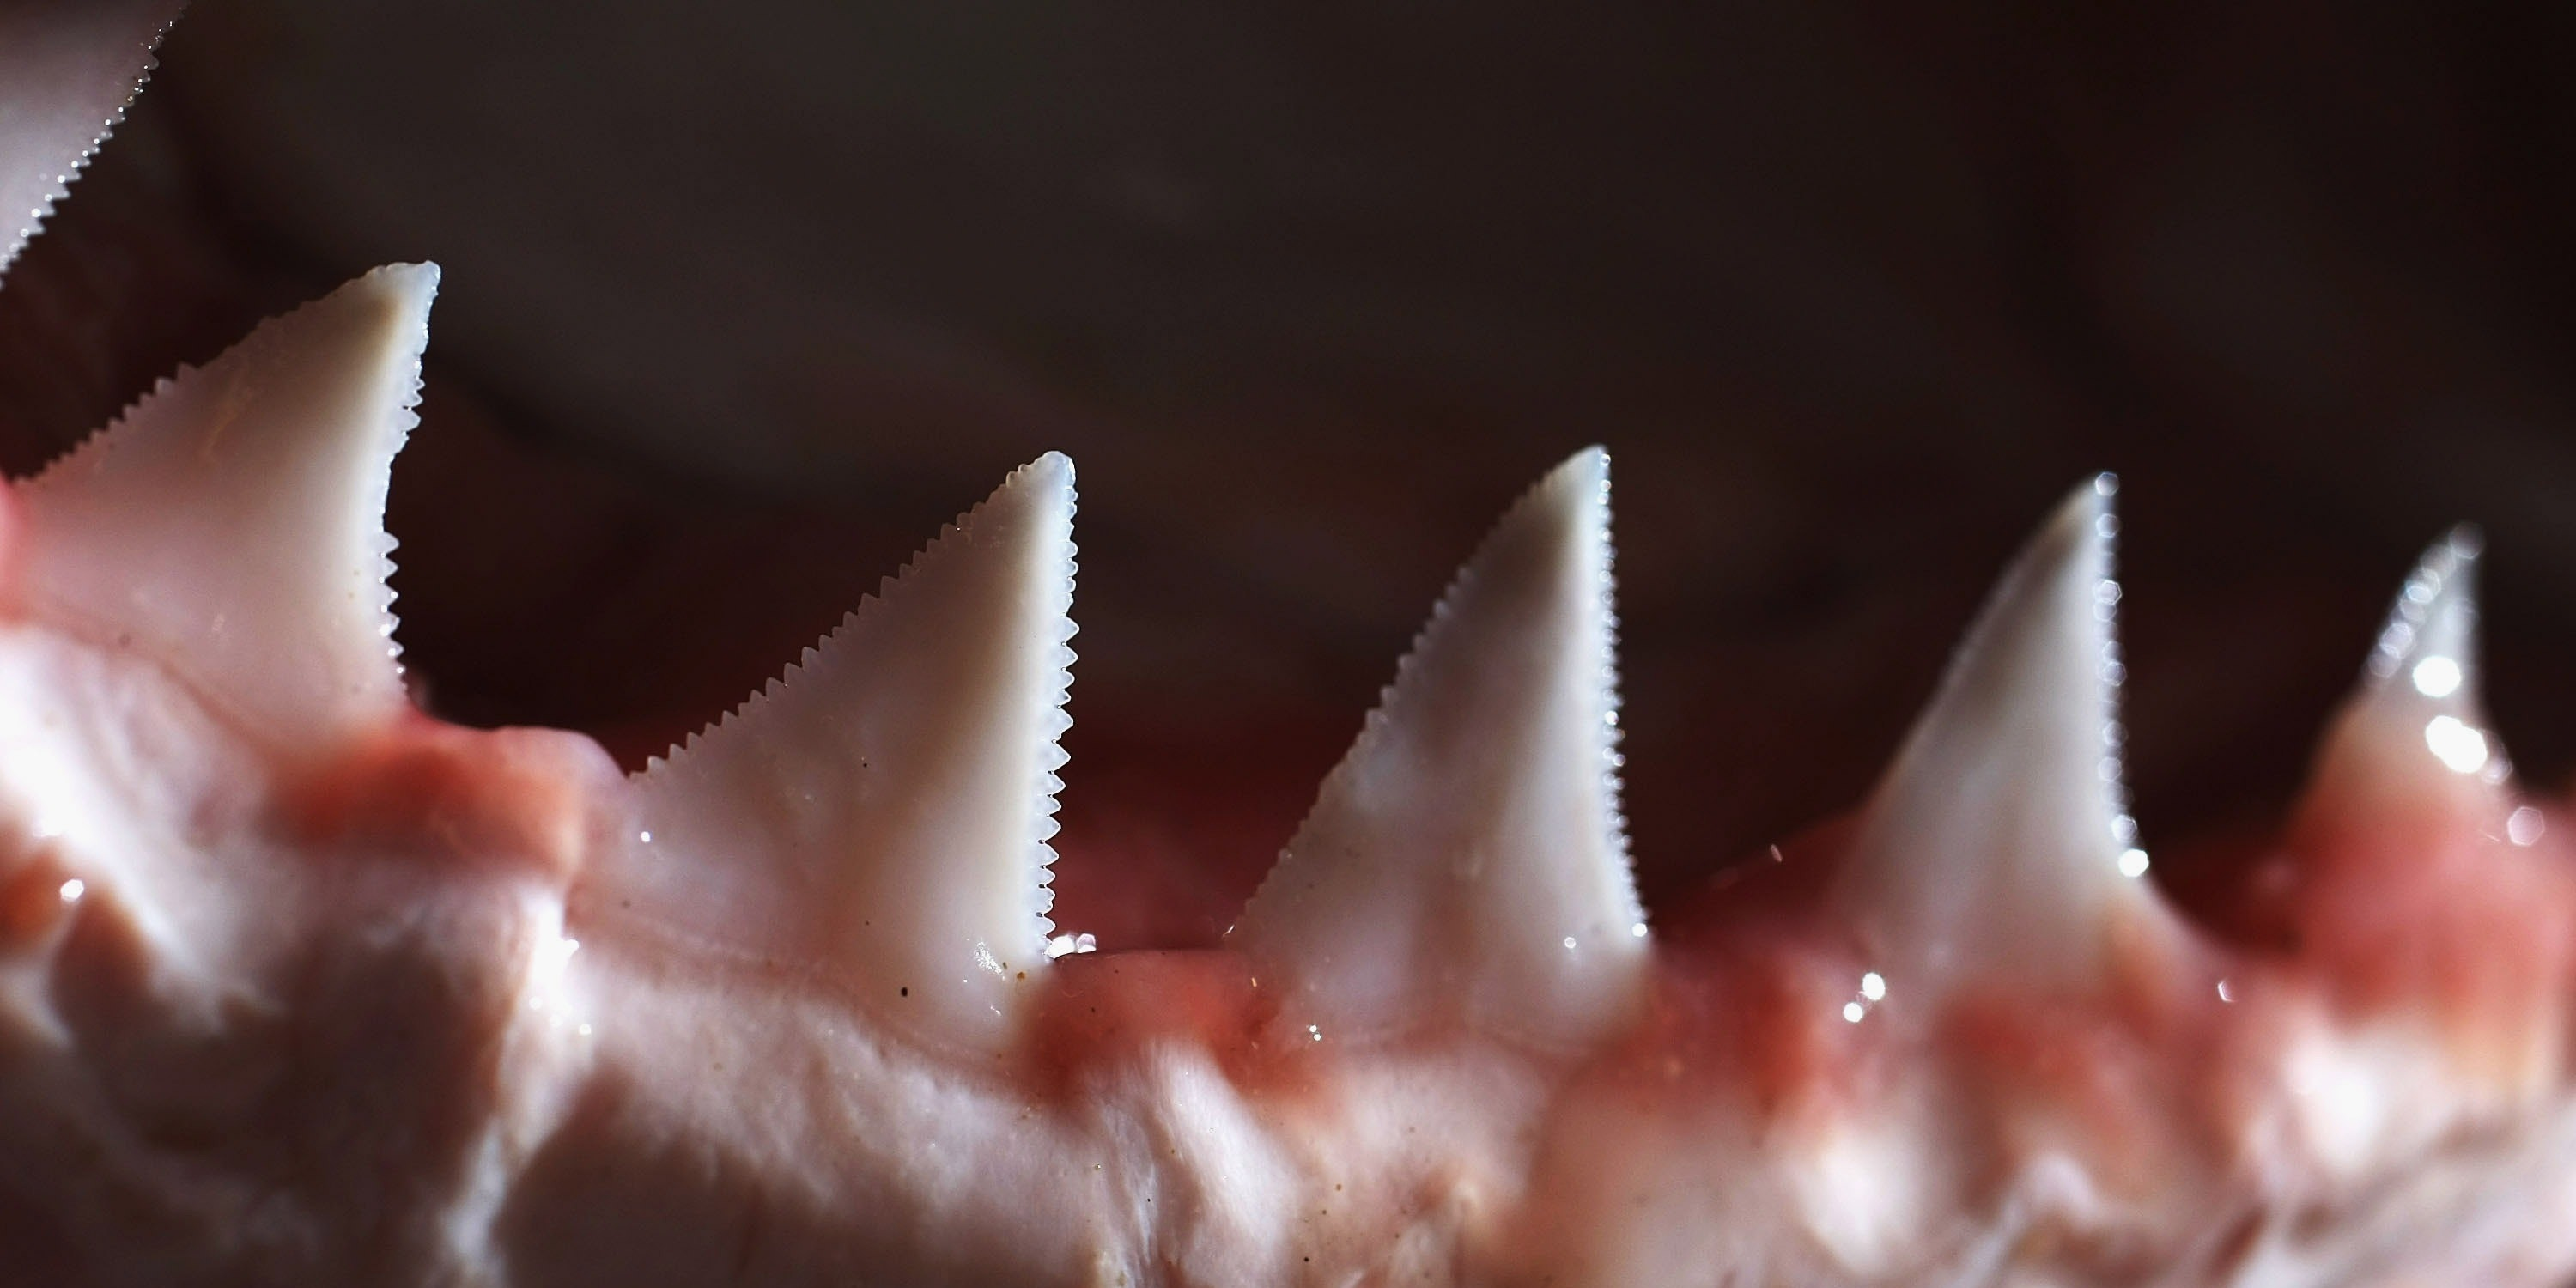 SYDNEY, AUSTRALIA - JULY 25:  The teeth and jaw of a Great White Shark are displayed after research into the biological mechanics of the predator July 25, 2007 in Sydney, Australia. Researchers at the University of New South Wales (UNSW) including Dan Huber from the the University of Tampa, Florida in the USA, plan to remove muscles from the head of several sharks in order to create a digital shark, to help determine it's bio mechanics and potential 'bite force'.  (Photo by Ian Waldie/Getty Images)